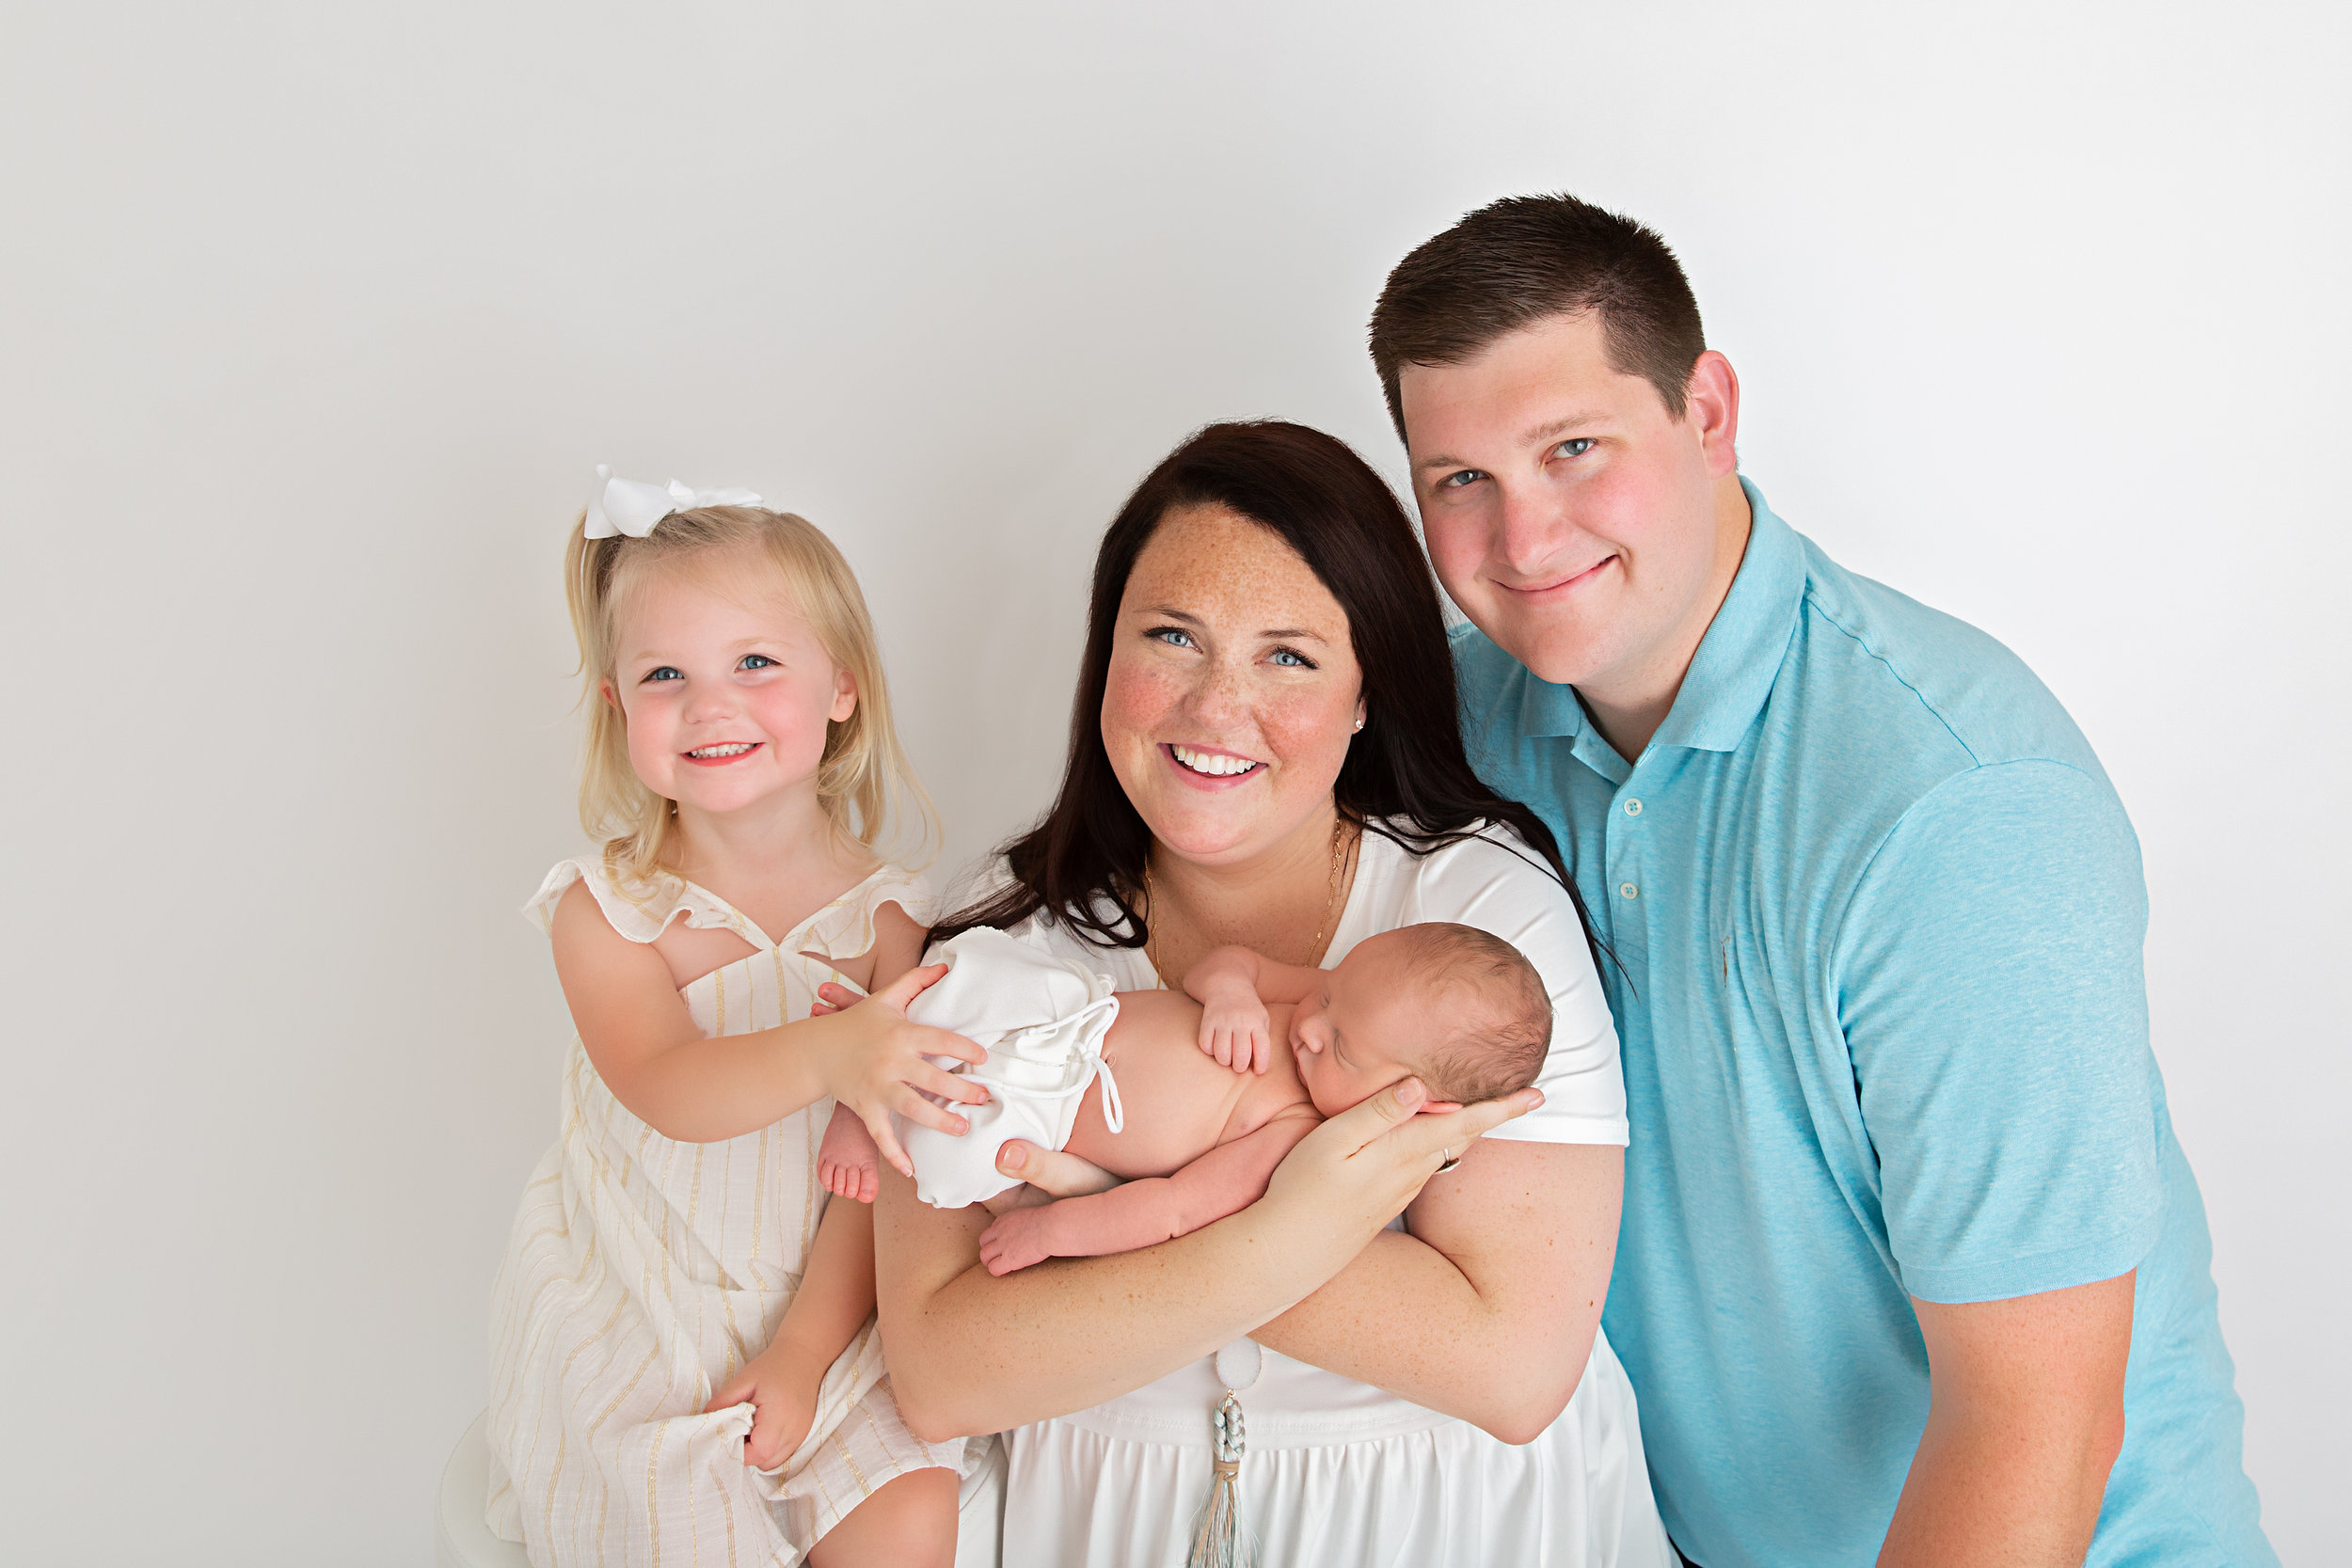 new family of four with newborn baby